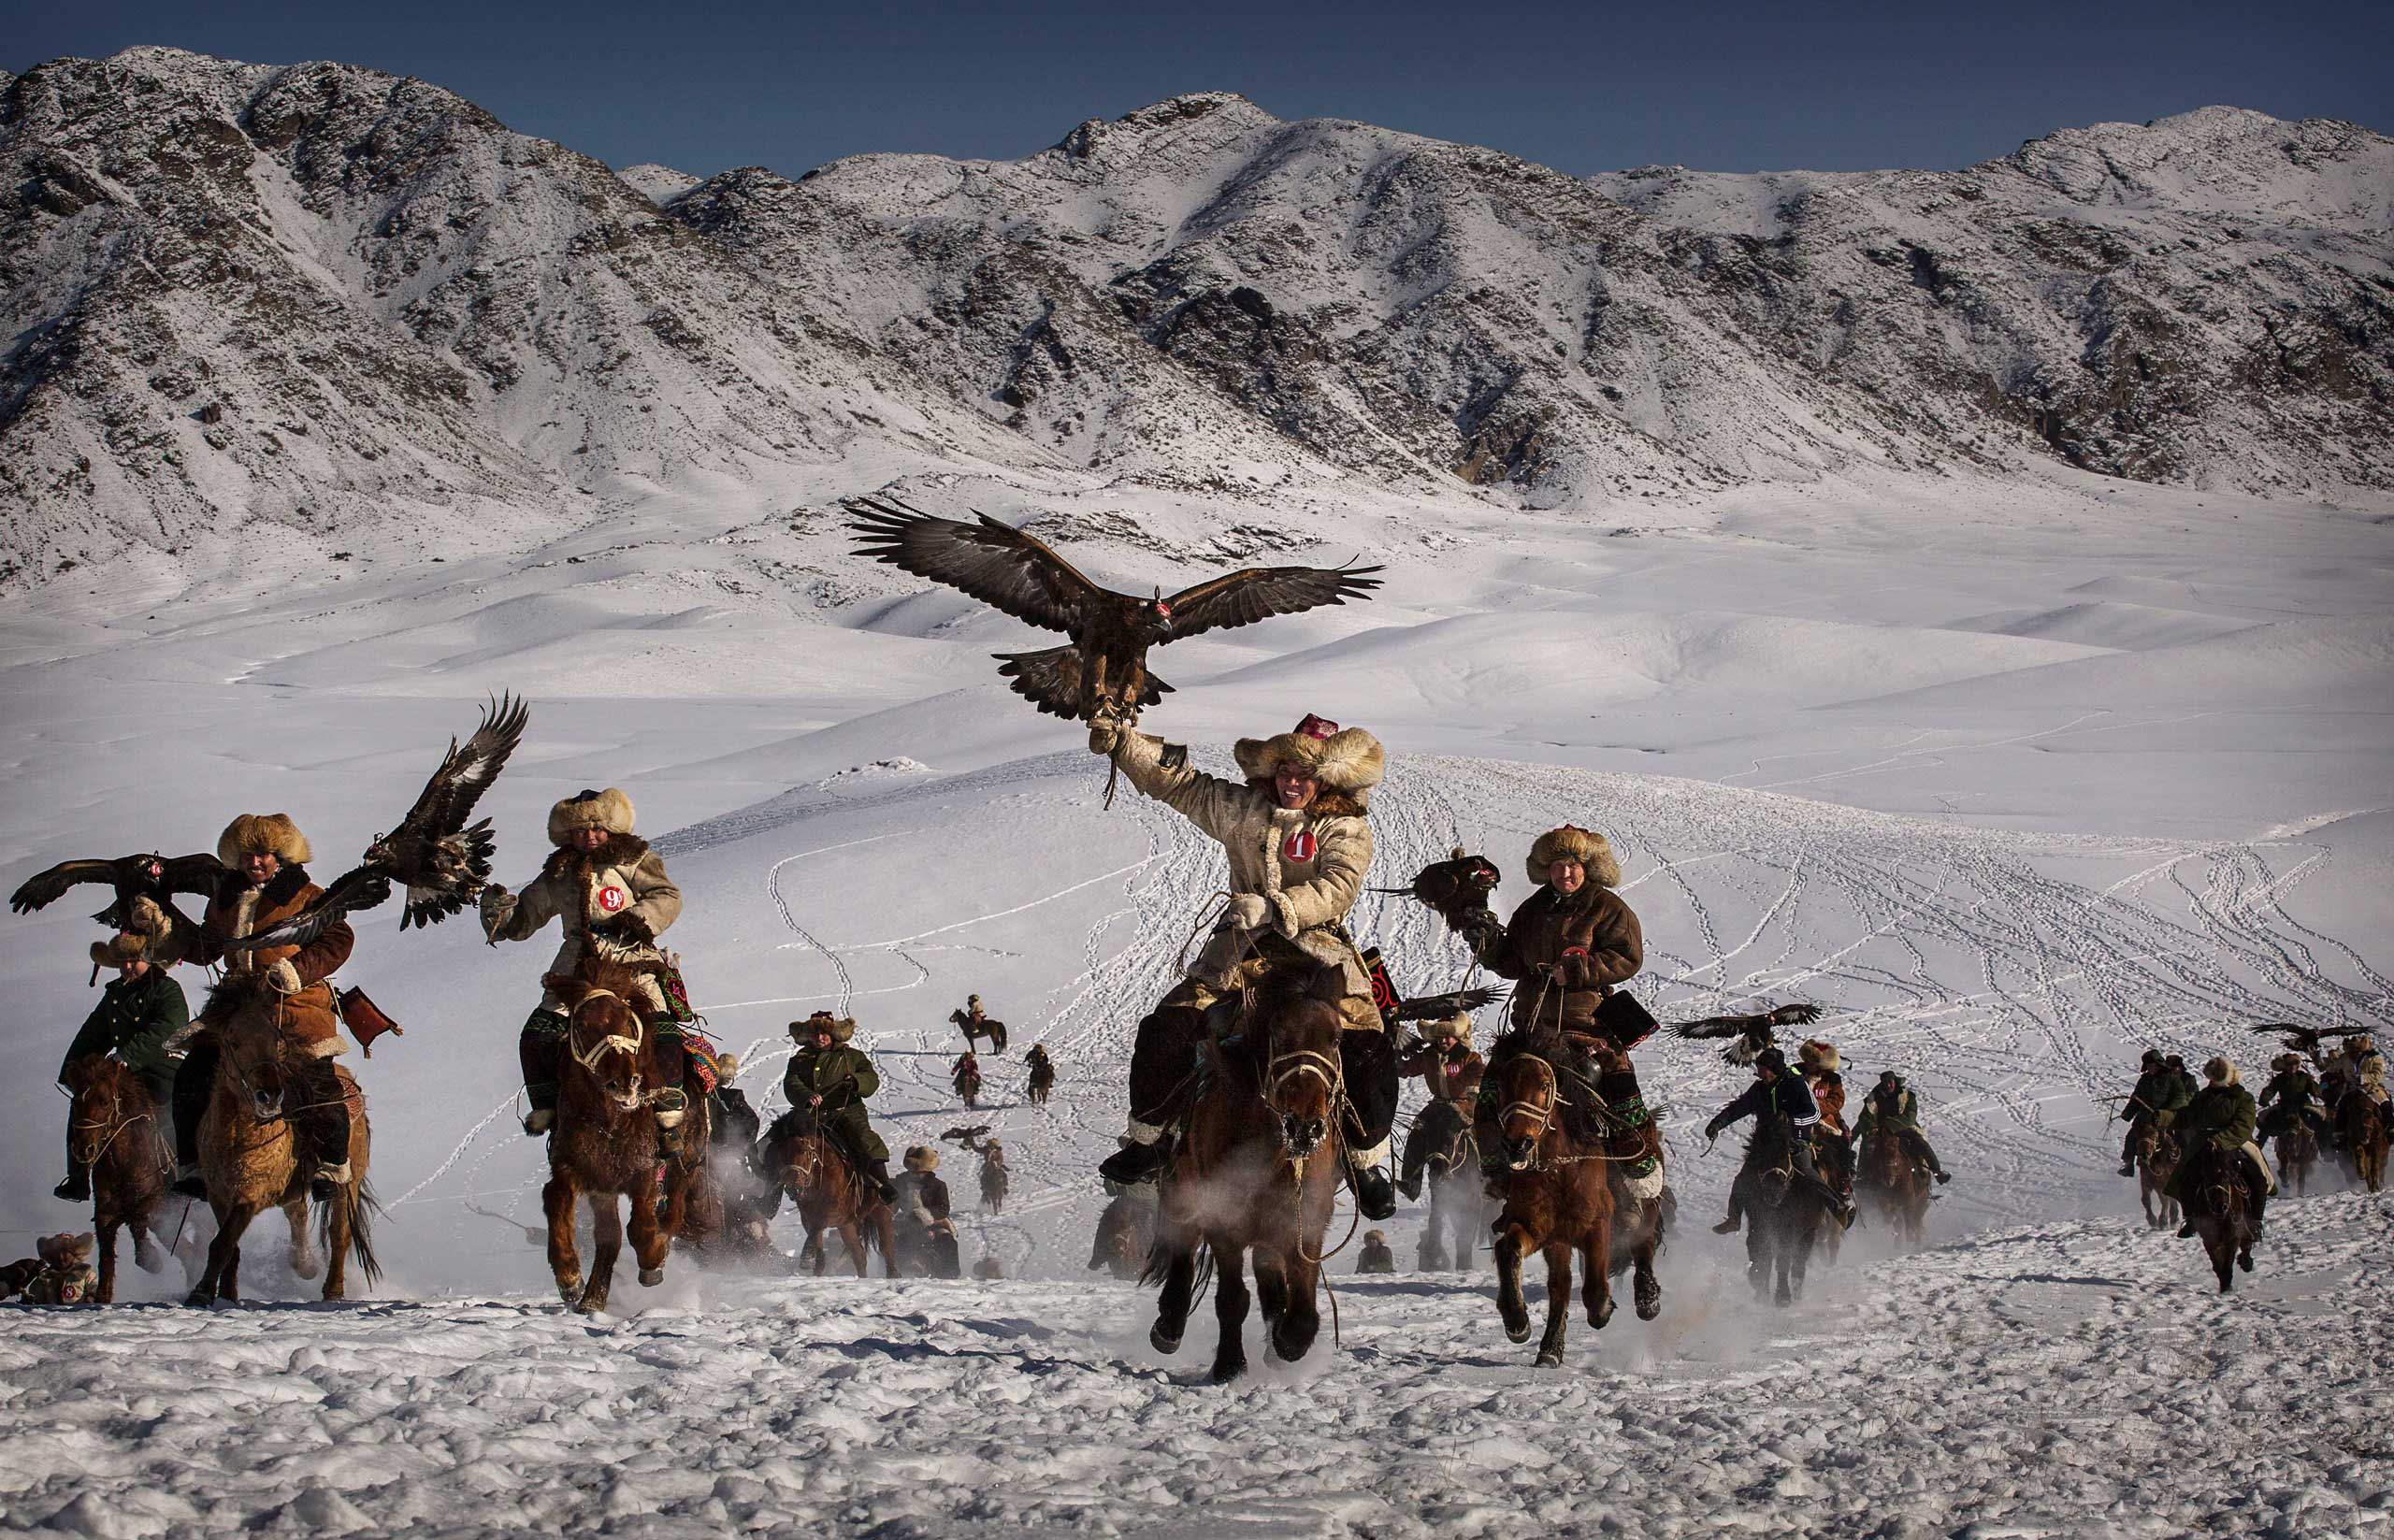 Chinese Kazakh eagle hunters ride with their eagles during the competition.